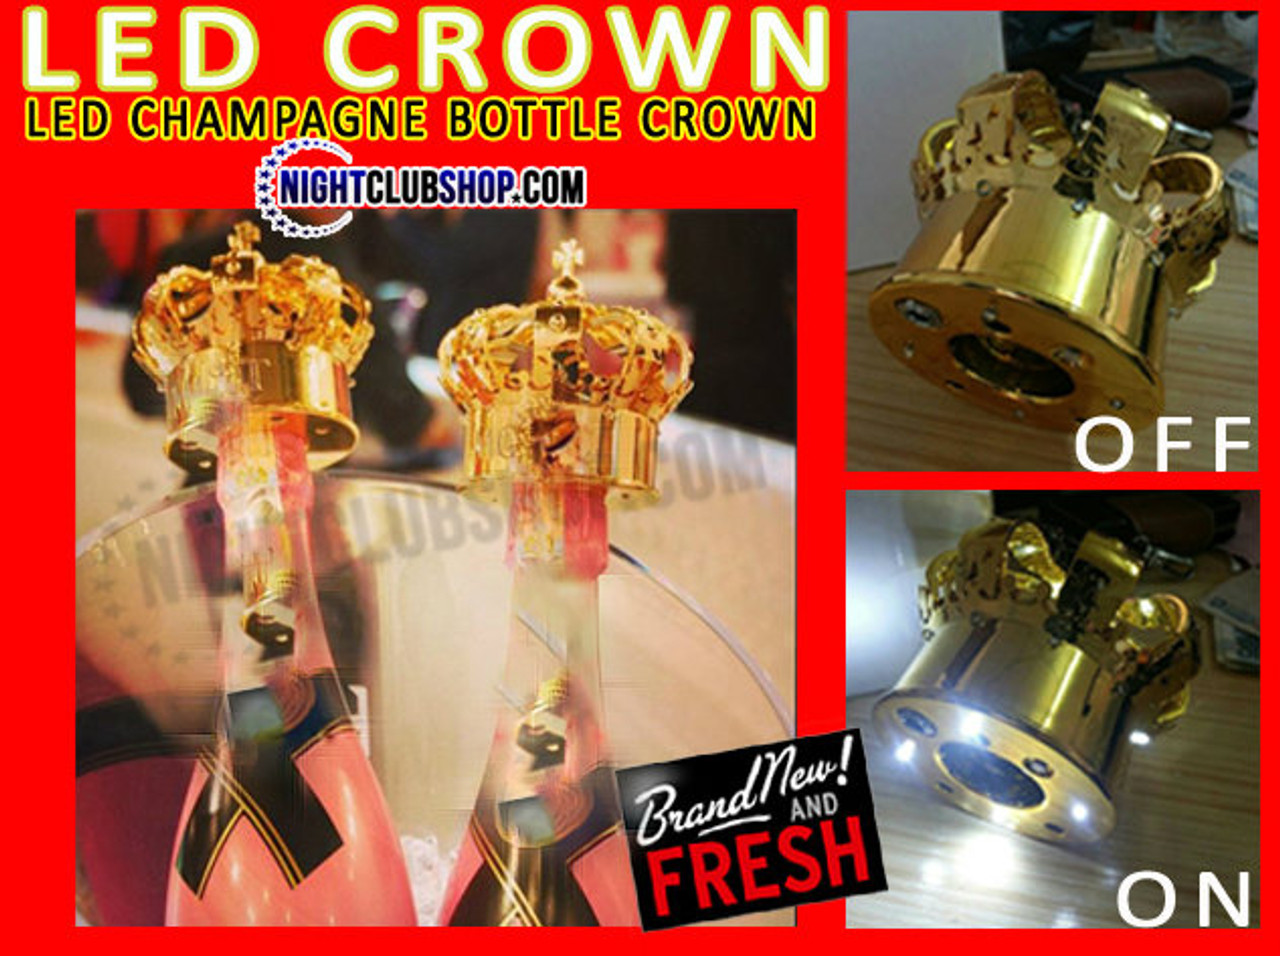 LED CROWN, MOET CROWN, LIGHT UP, CROWN,CHAMPAGNE, BOTTLE, SERVICE, DELIVERY, STROBE, NITESPARX, ALTERNATIVE, SPARKLER